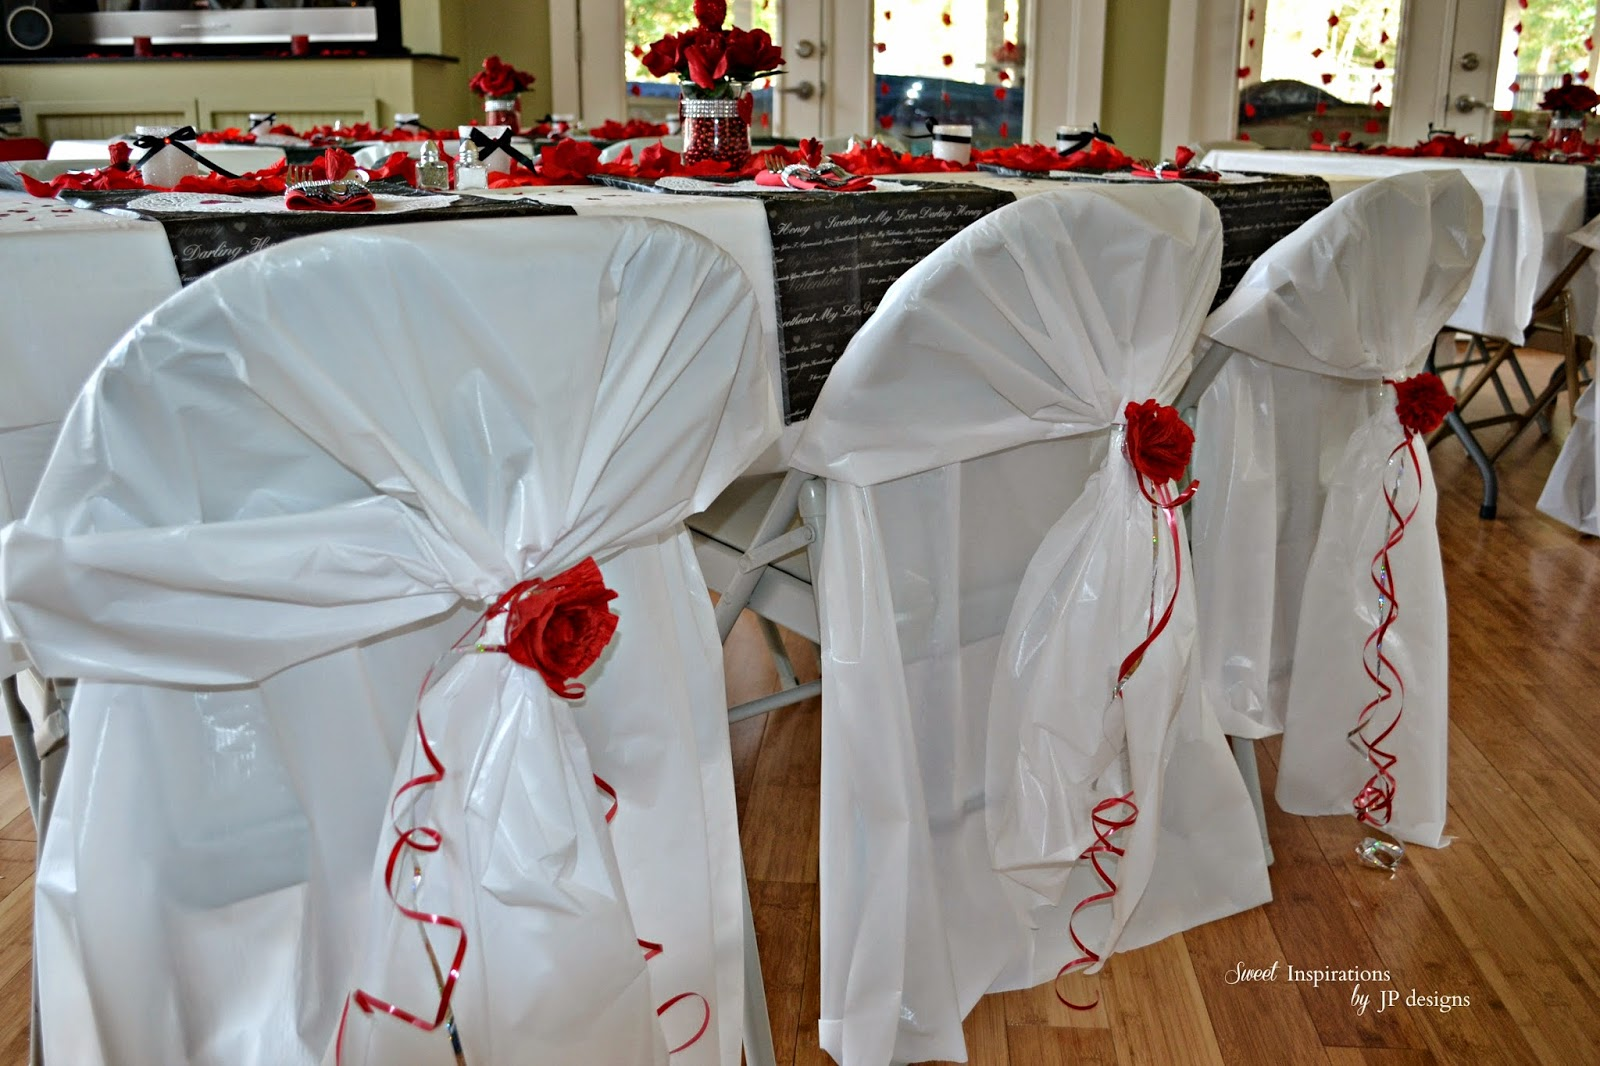 Sweet Inspirations by JP designs A Very Romantic Gathering for 30 Lover